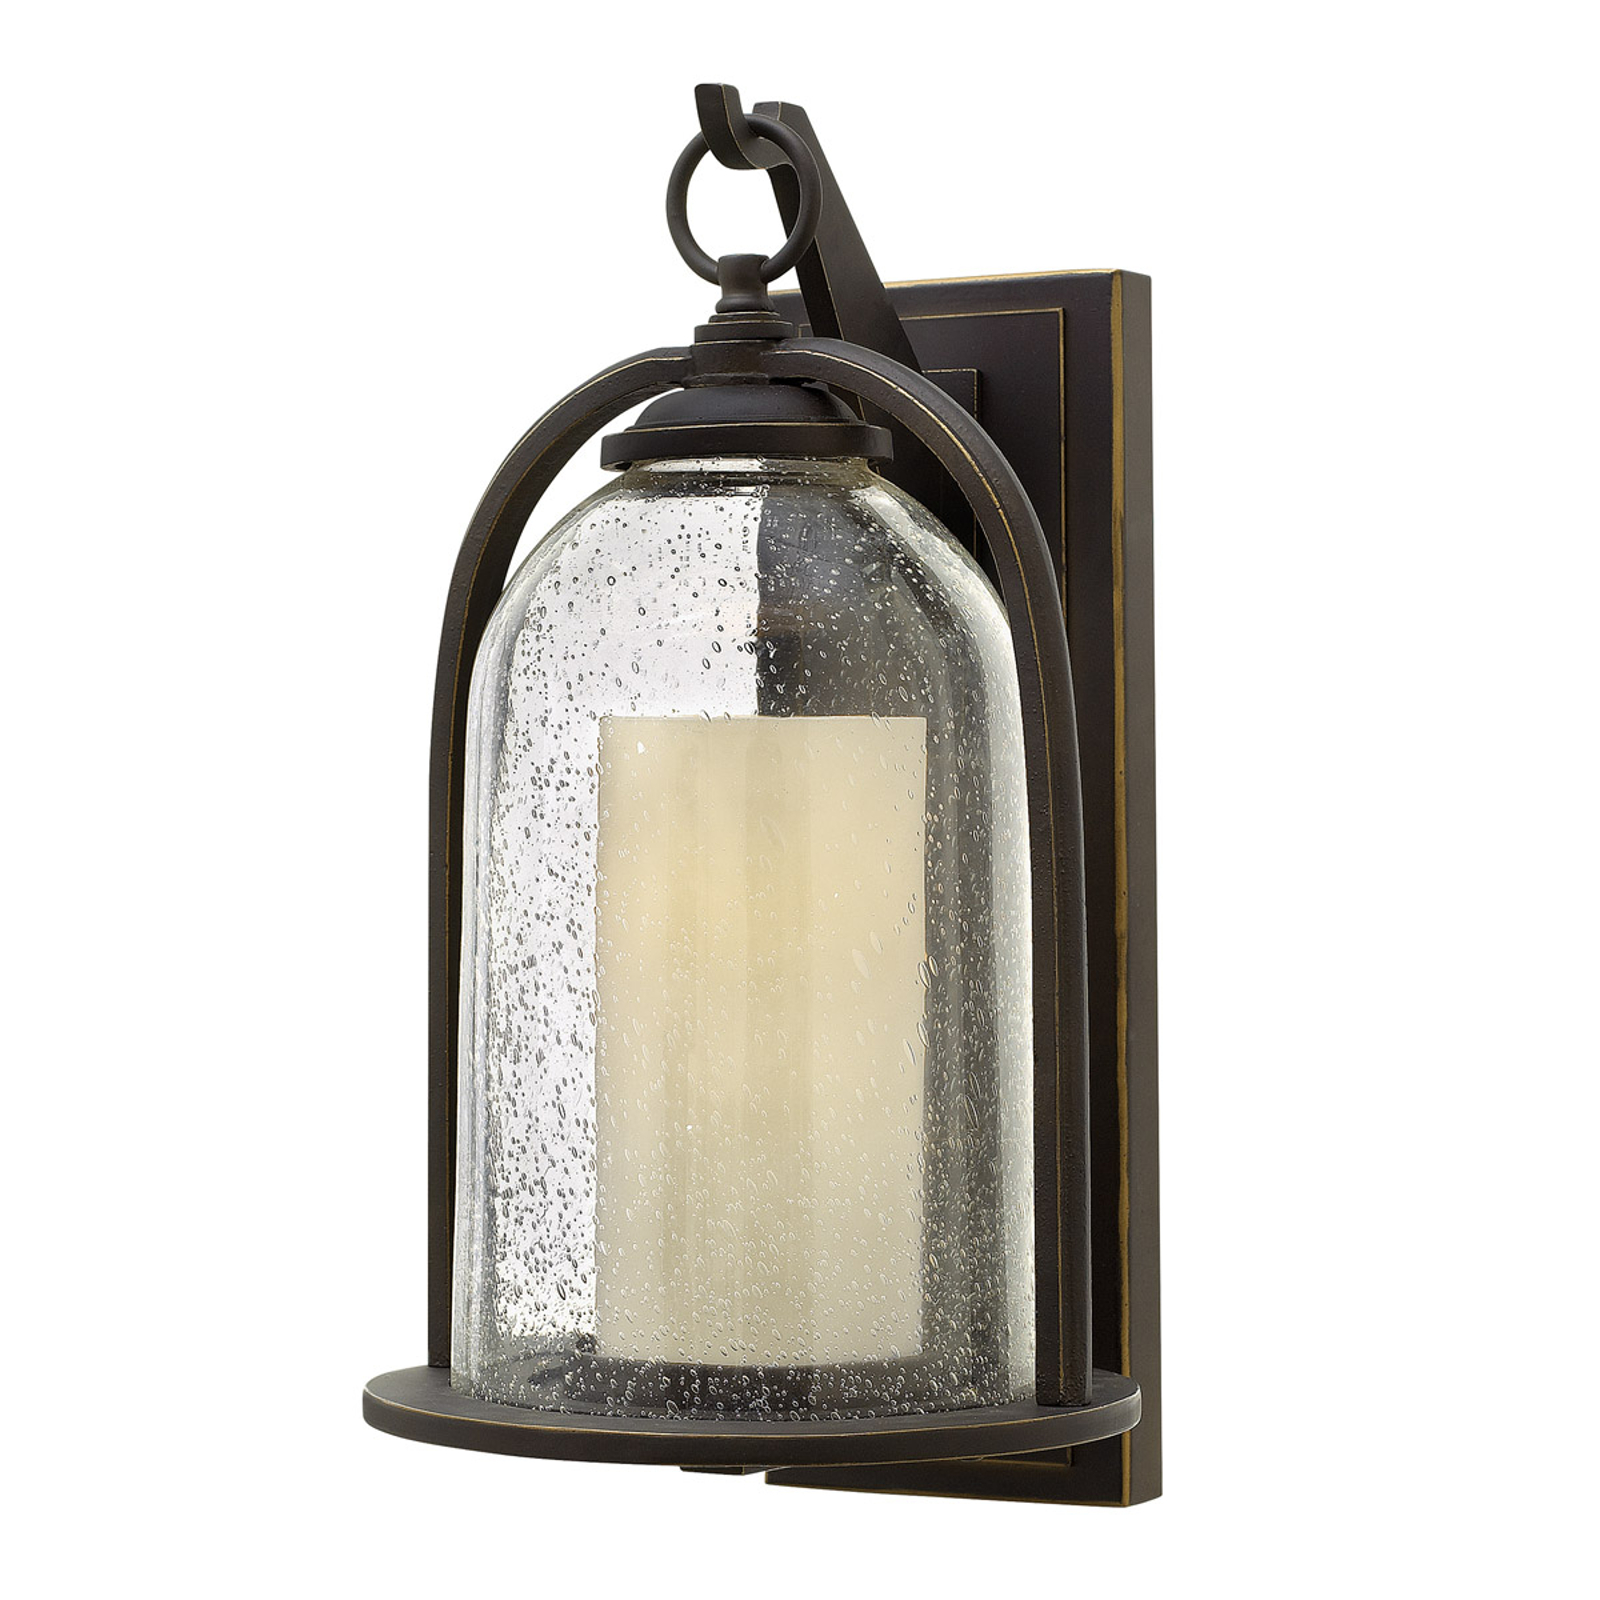 Rustic country style outdoor wall lamp Quincy_3048376_1